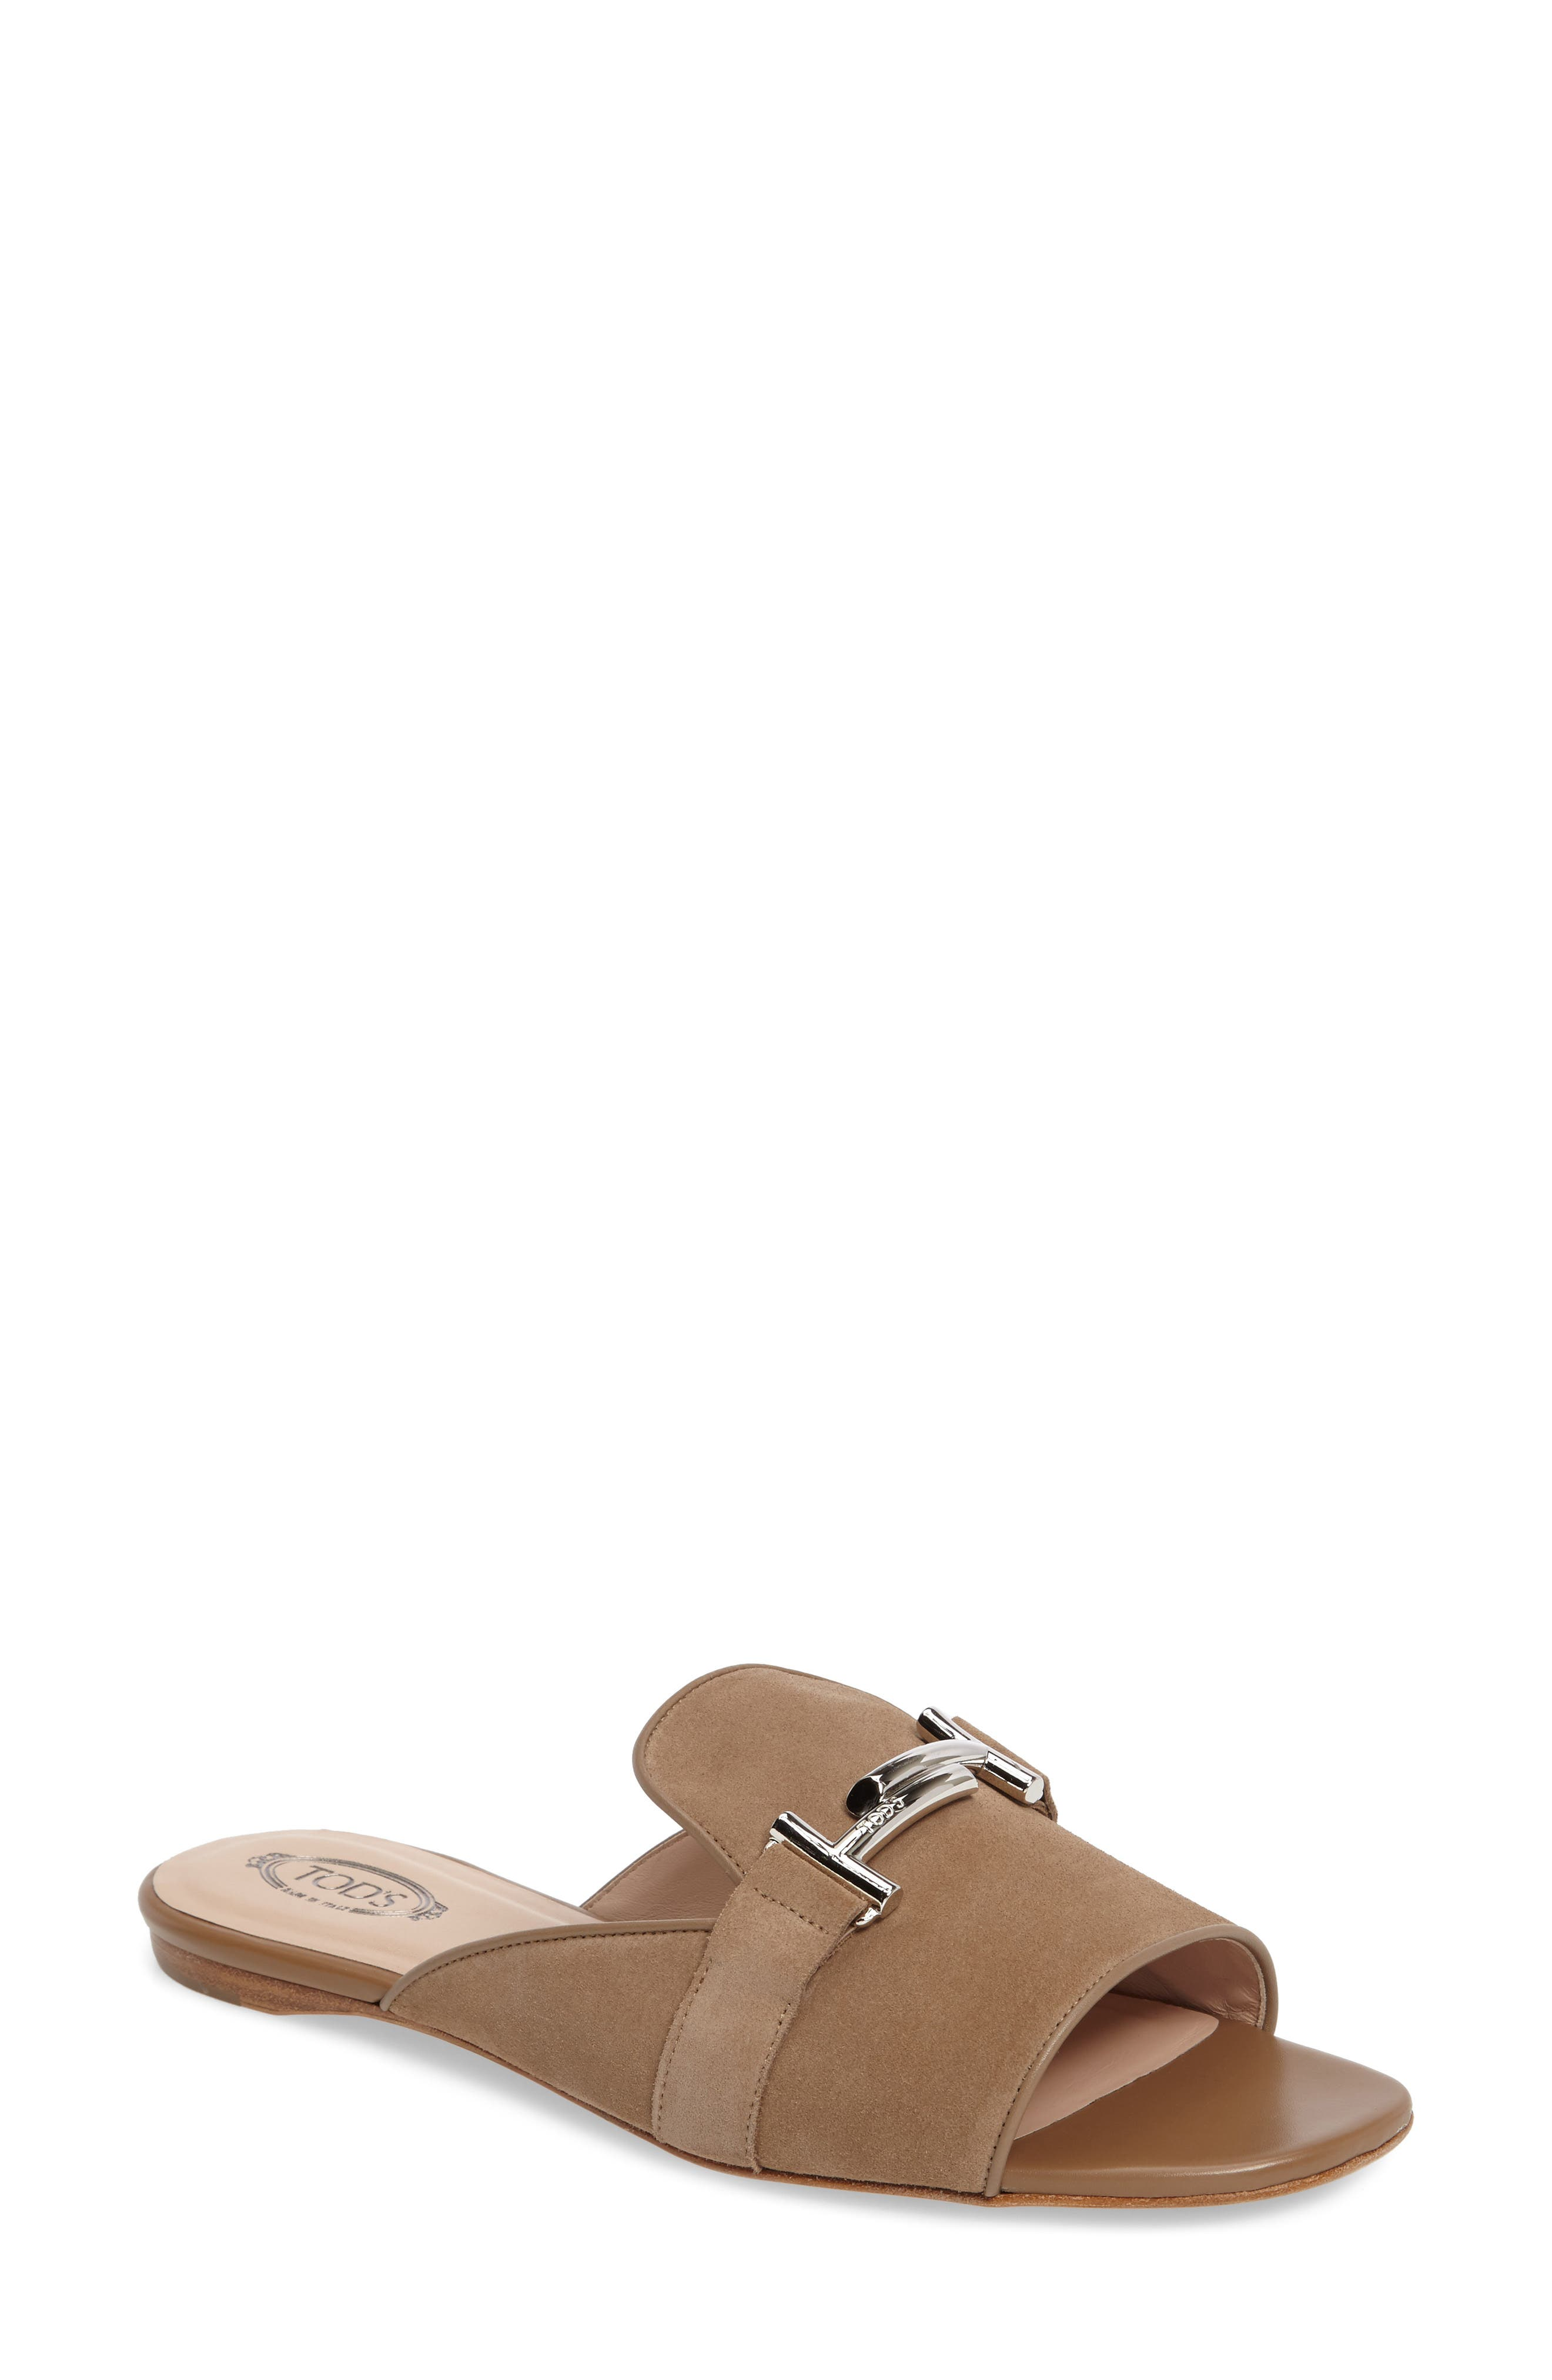 Double T Open Toe Loafer Mule,                         Main,                         color, 200